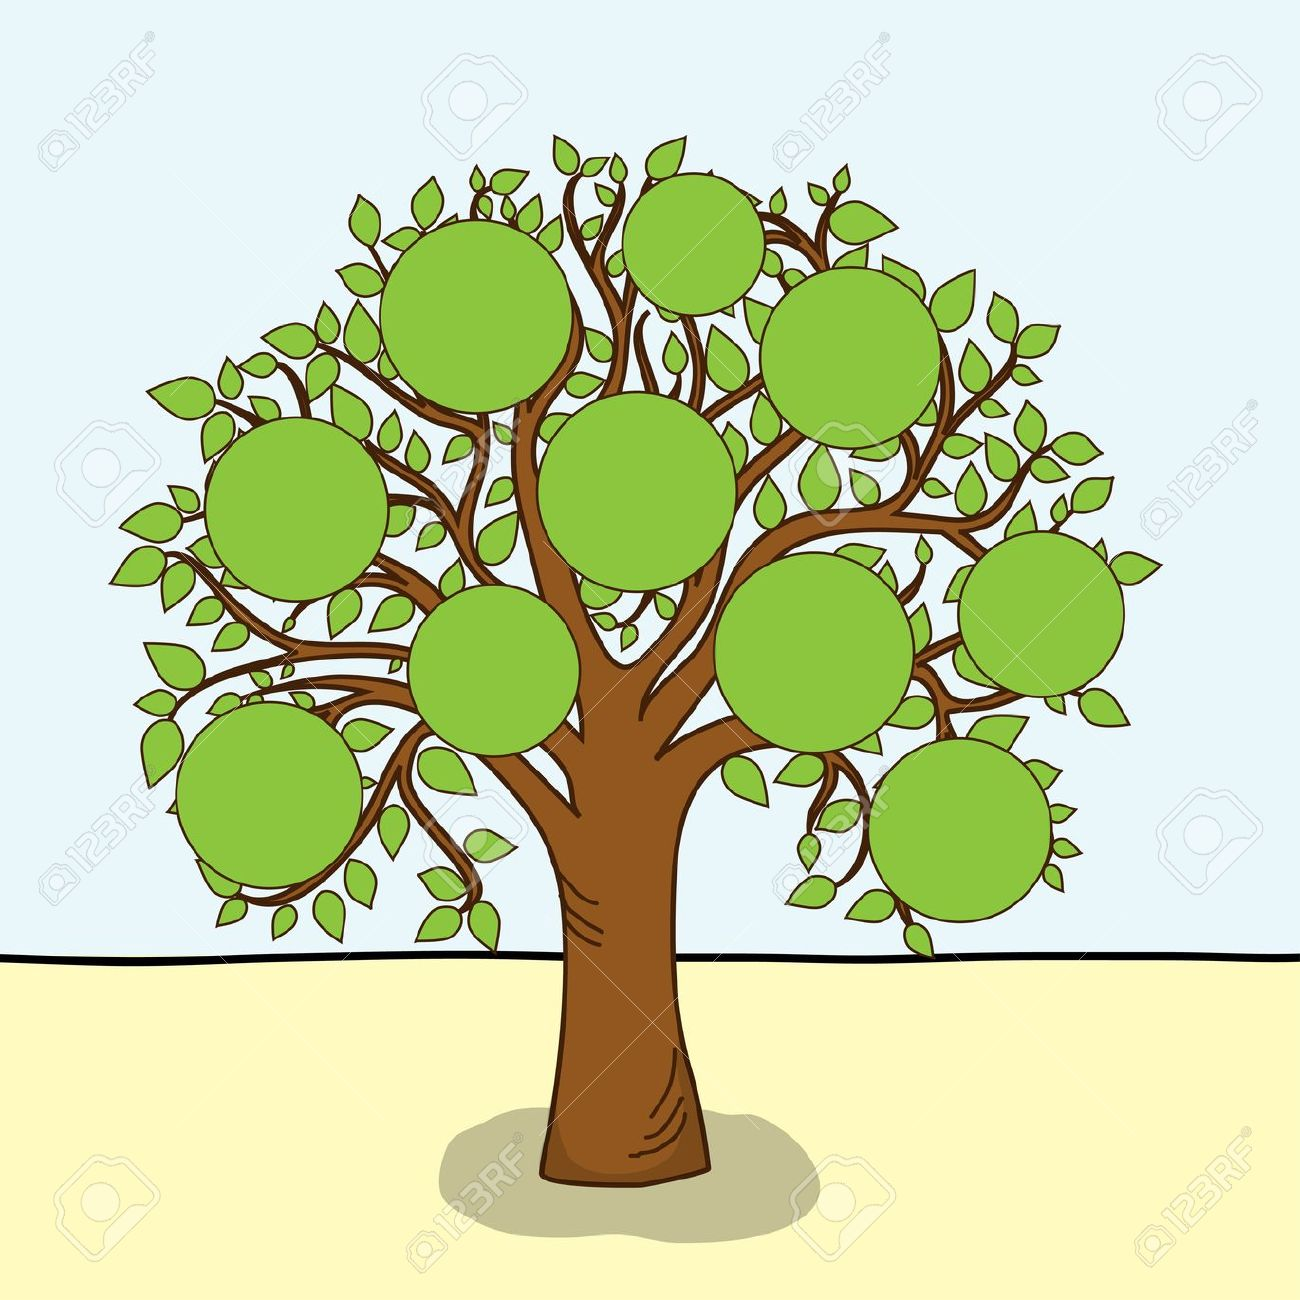 Family Tree Clipart Images.